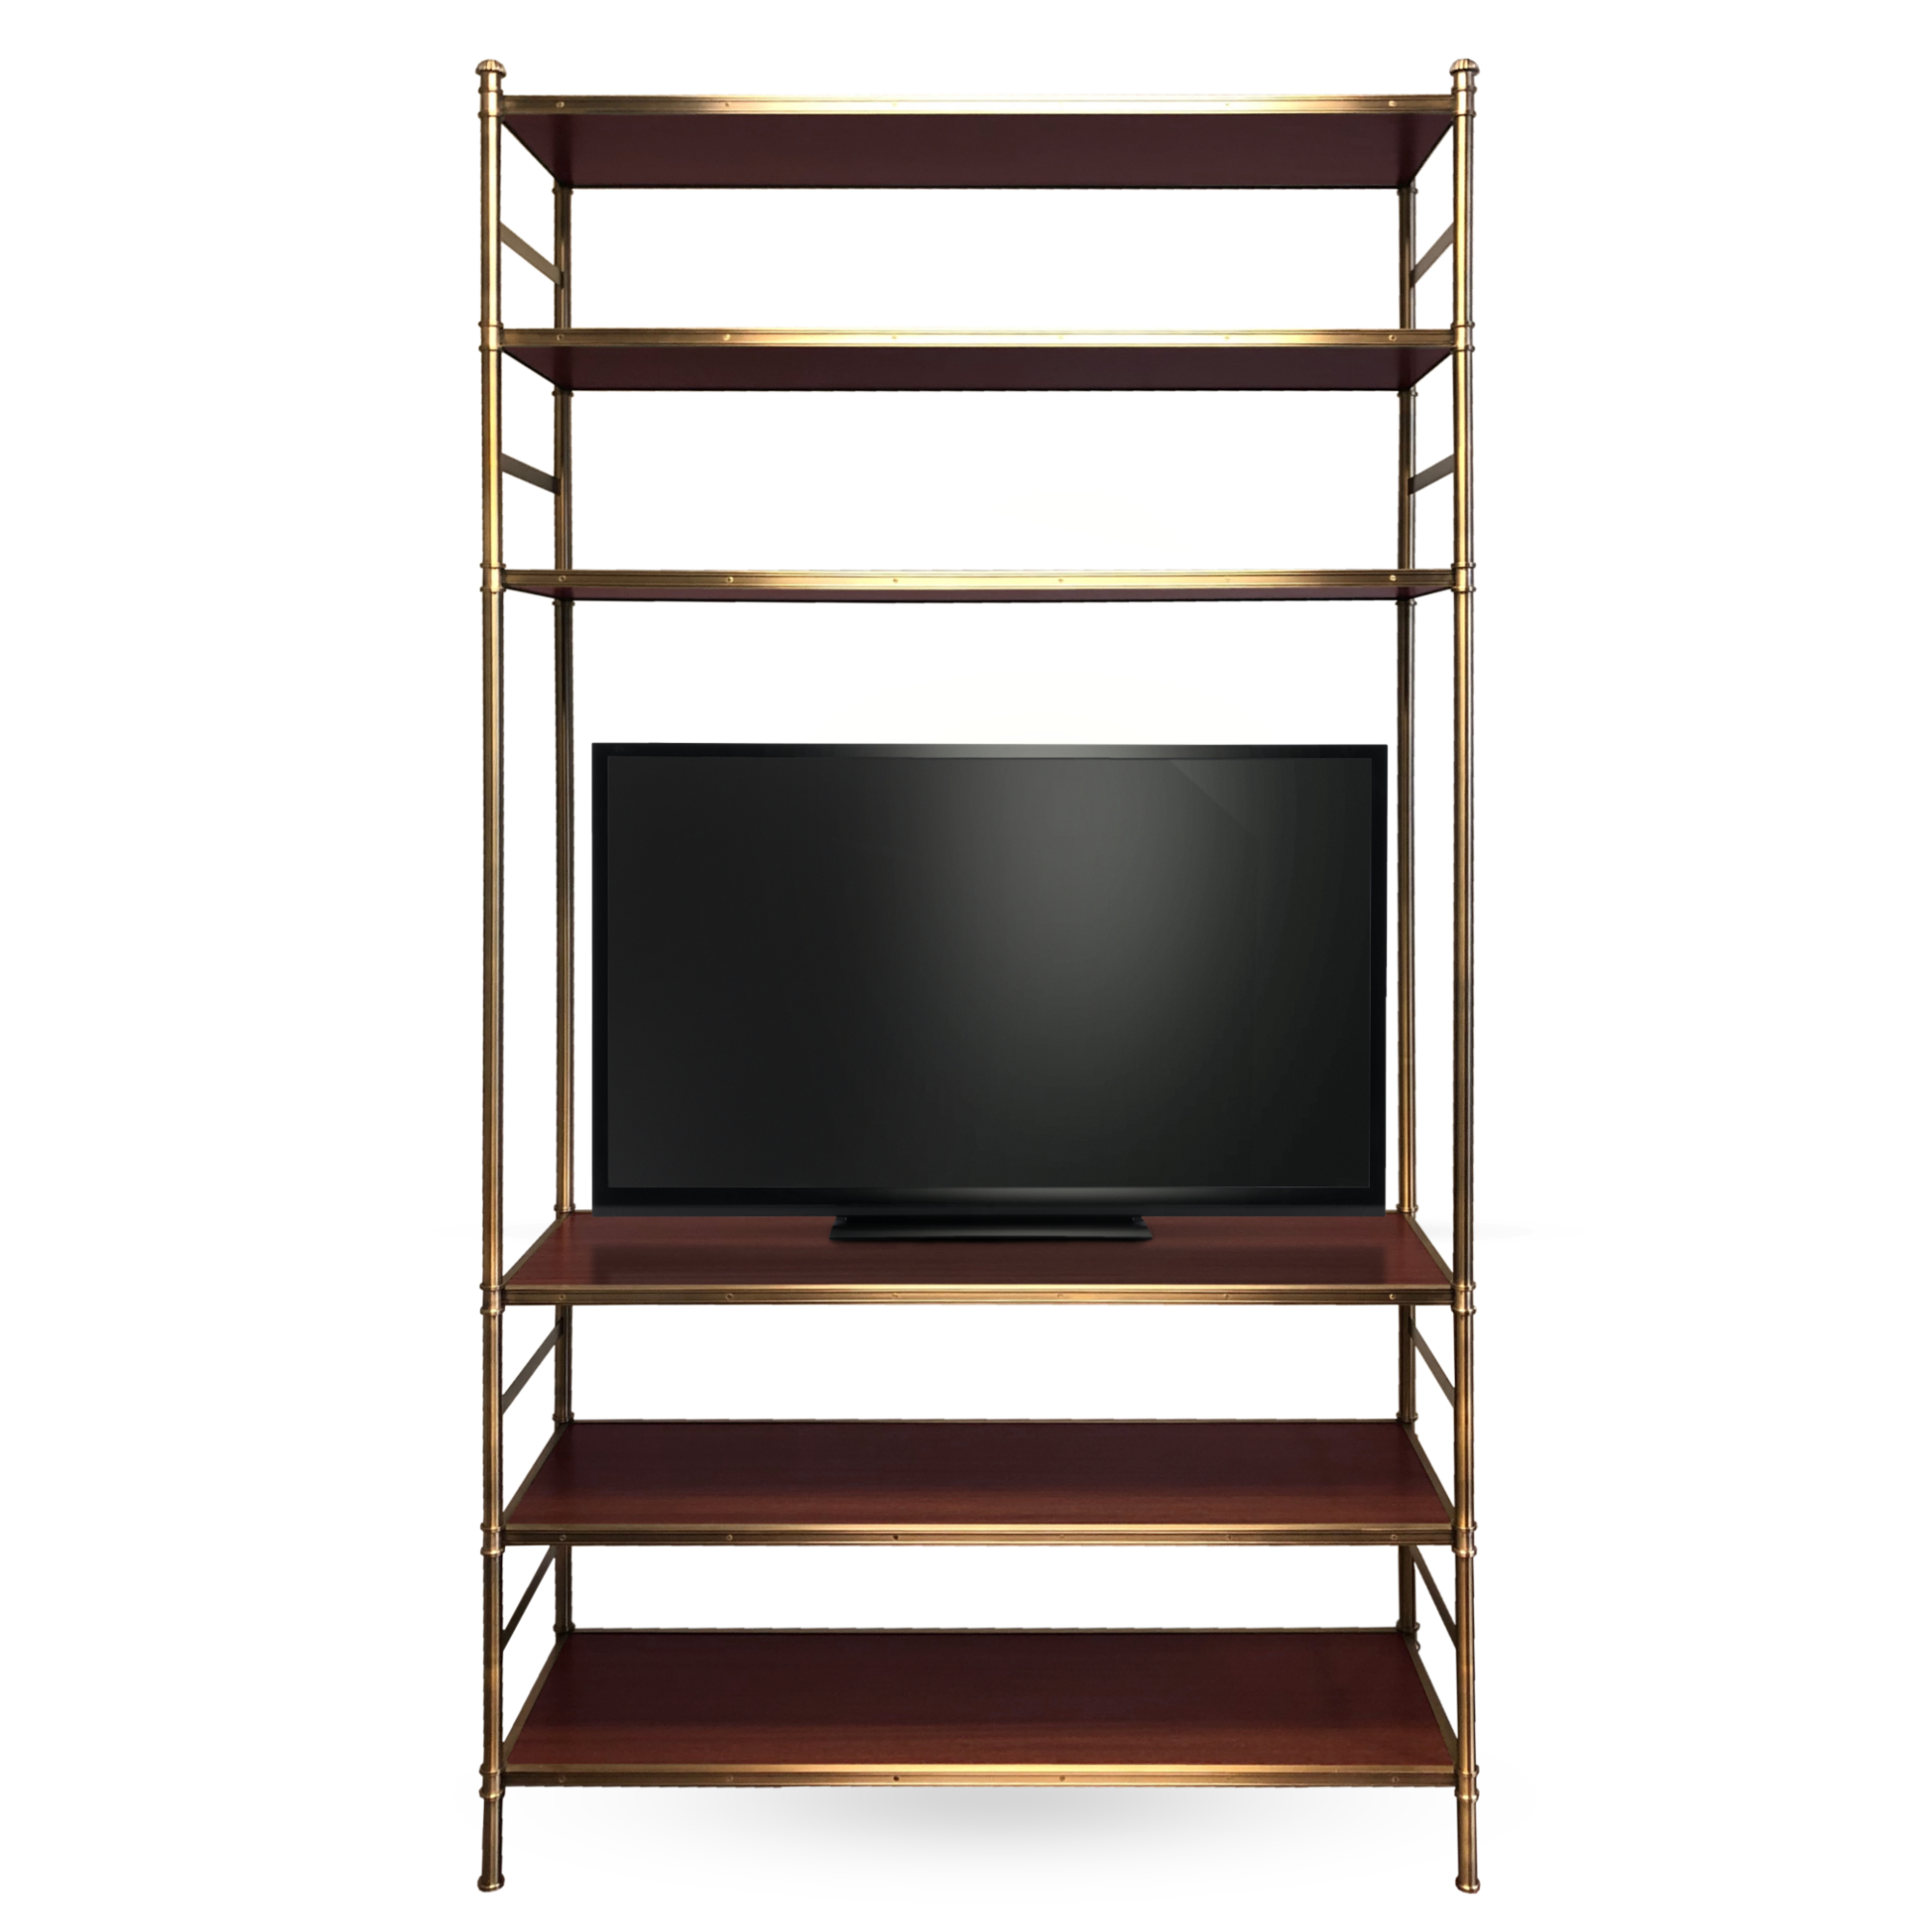 Custom Cole Porter Etagere TV stand by Victoria & Son